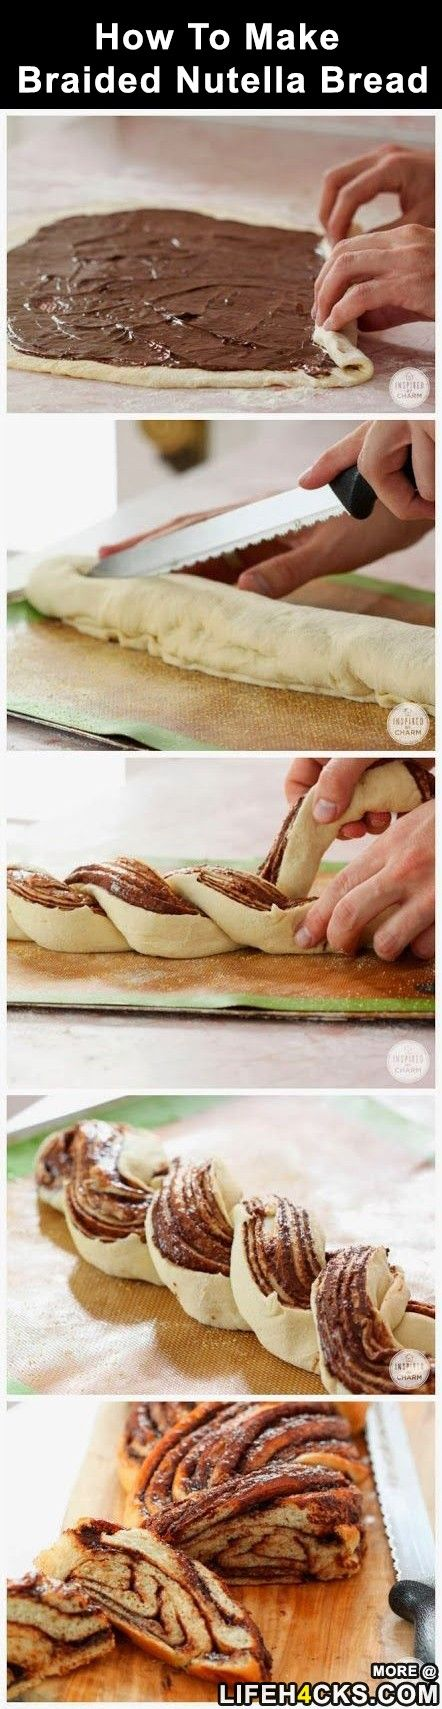 Braided Nutella Bread - The source for this pin had no recipe, so I linked it to gluten free on a shoestring's braided nutella recipe. (Use homemade nutella to make soy free. A good homemade nutella recipe can be found here: http://www.bonappetit.com/recipe/better-than-nutella-chocolate-hazelnut-spread ) #FinlandiaButter and #GotItFree